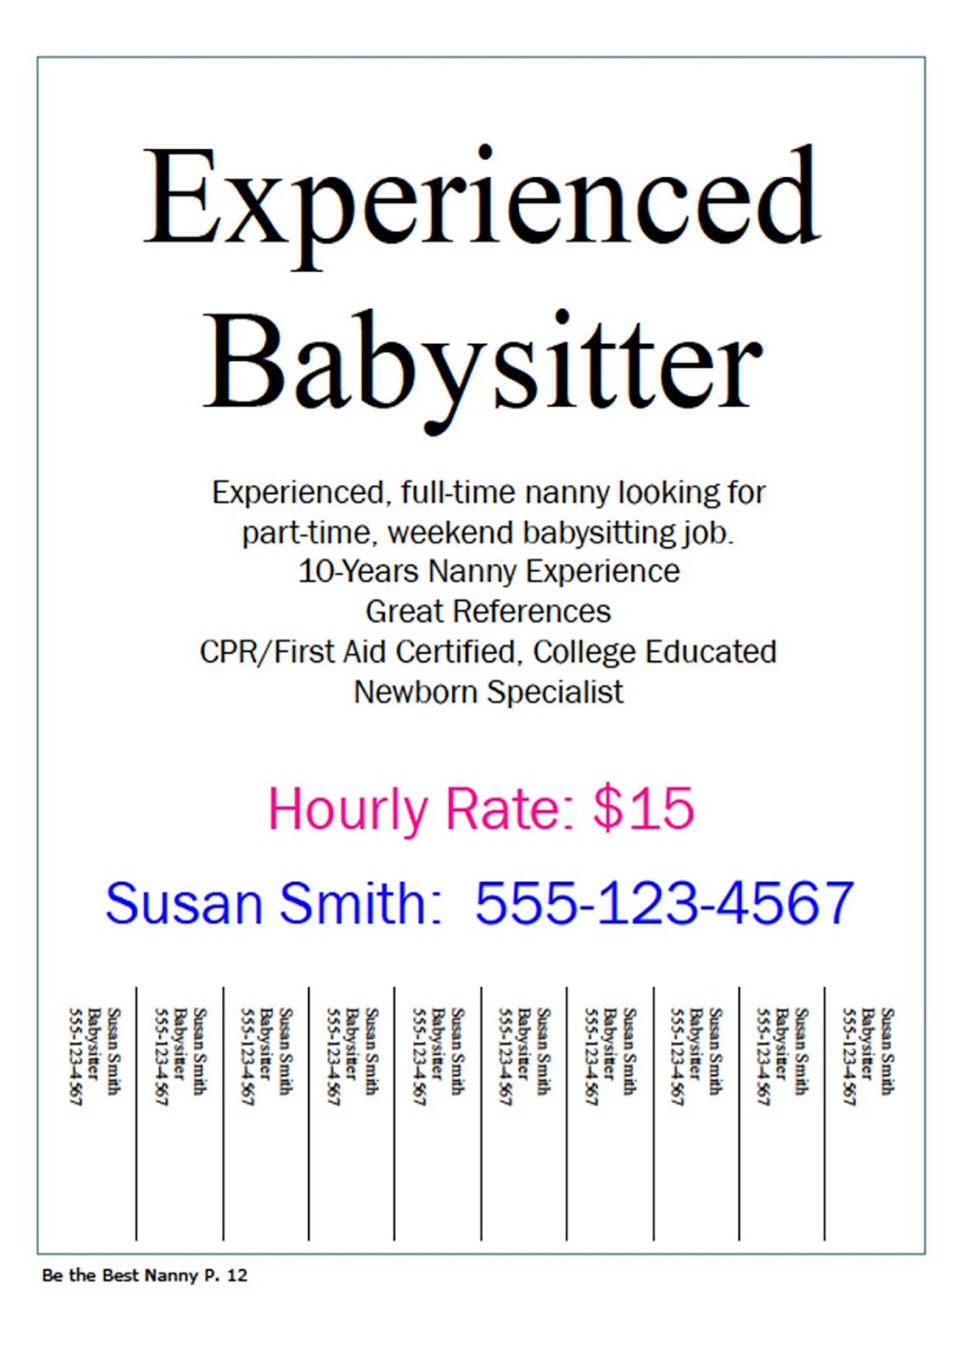 Be a babysitter! Just for a few months! No biggy! As long as you have responsibility your good to go. You can charge 10 dollars an hour! Save up and be considerate of the other persons income!